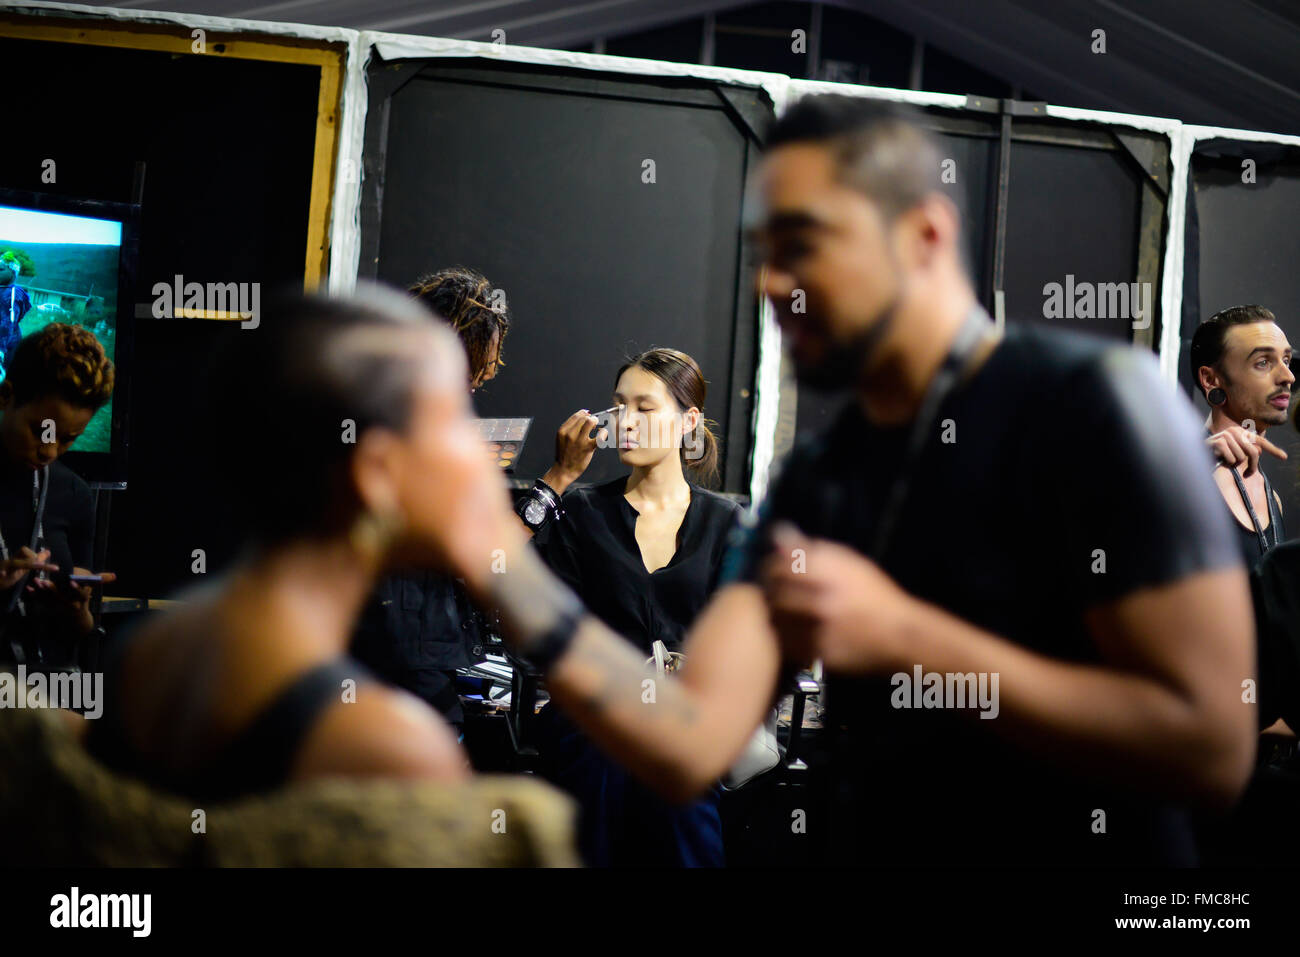 Johannesburg, South Africa. 11th Mar, 2016. Make-up artists prepare models backstage ahead of the presentation of - Stock Image